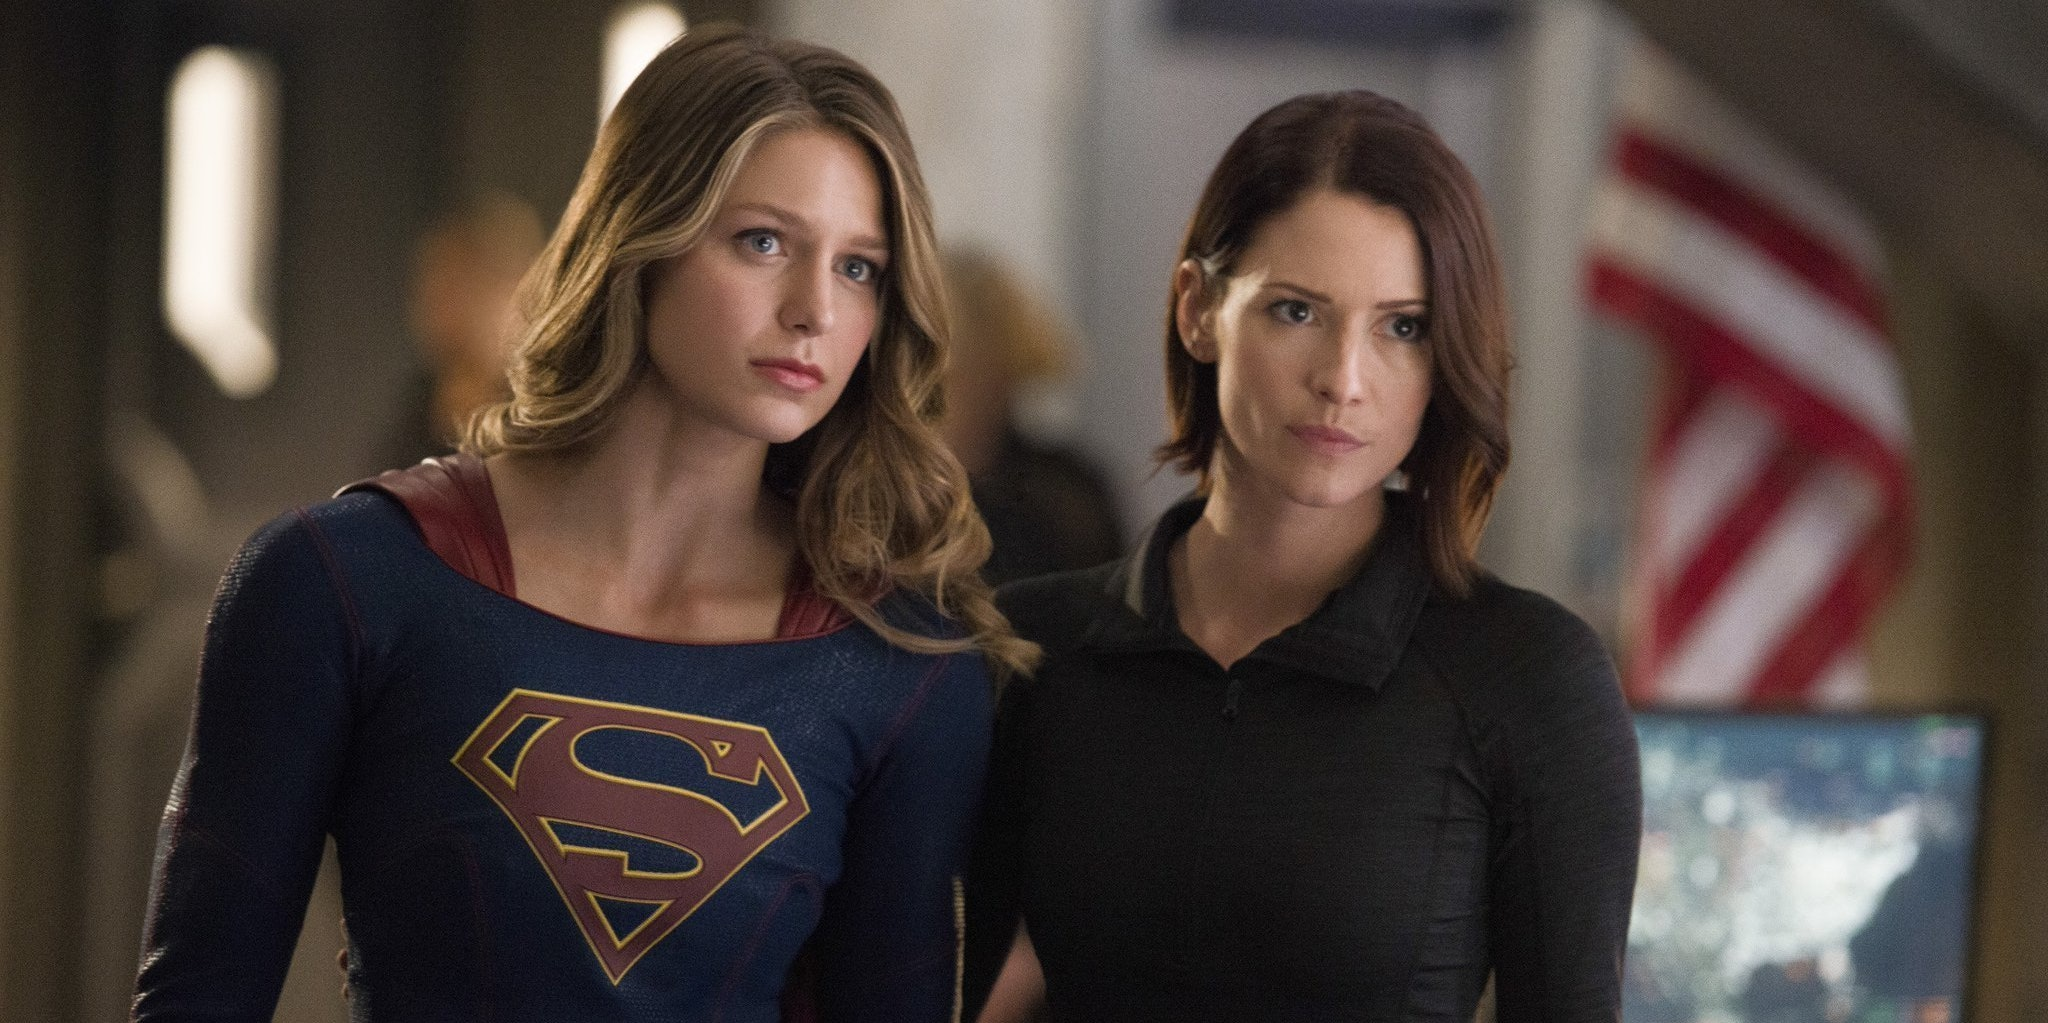 'Supergirl' Continues to Give No Fucks About Being Gay